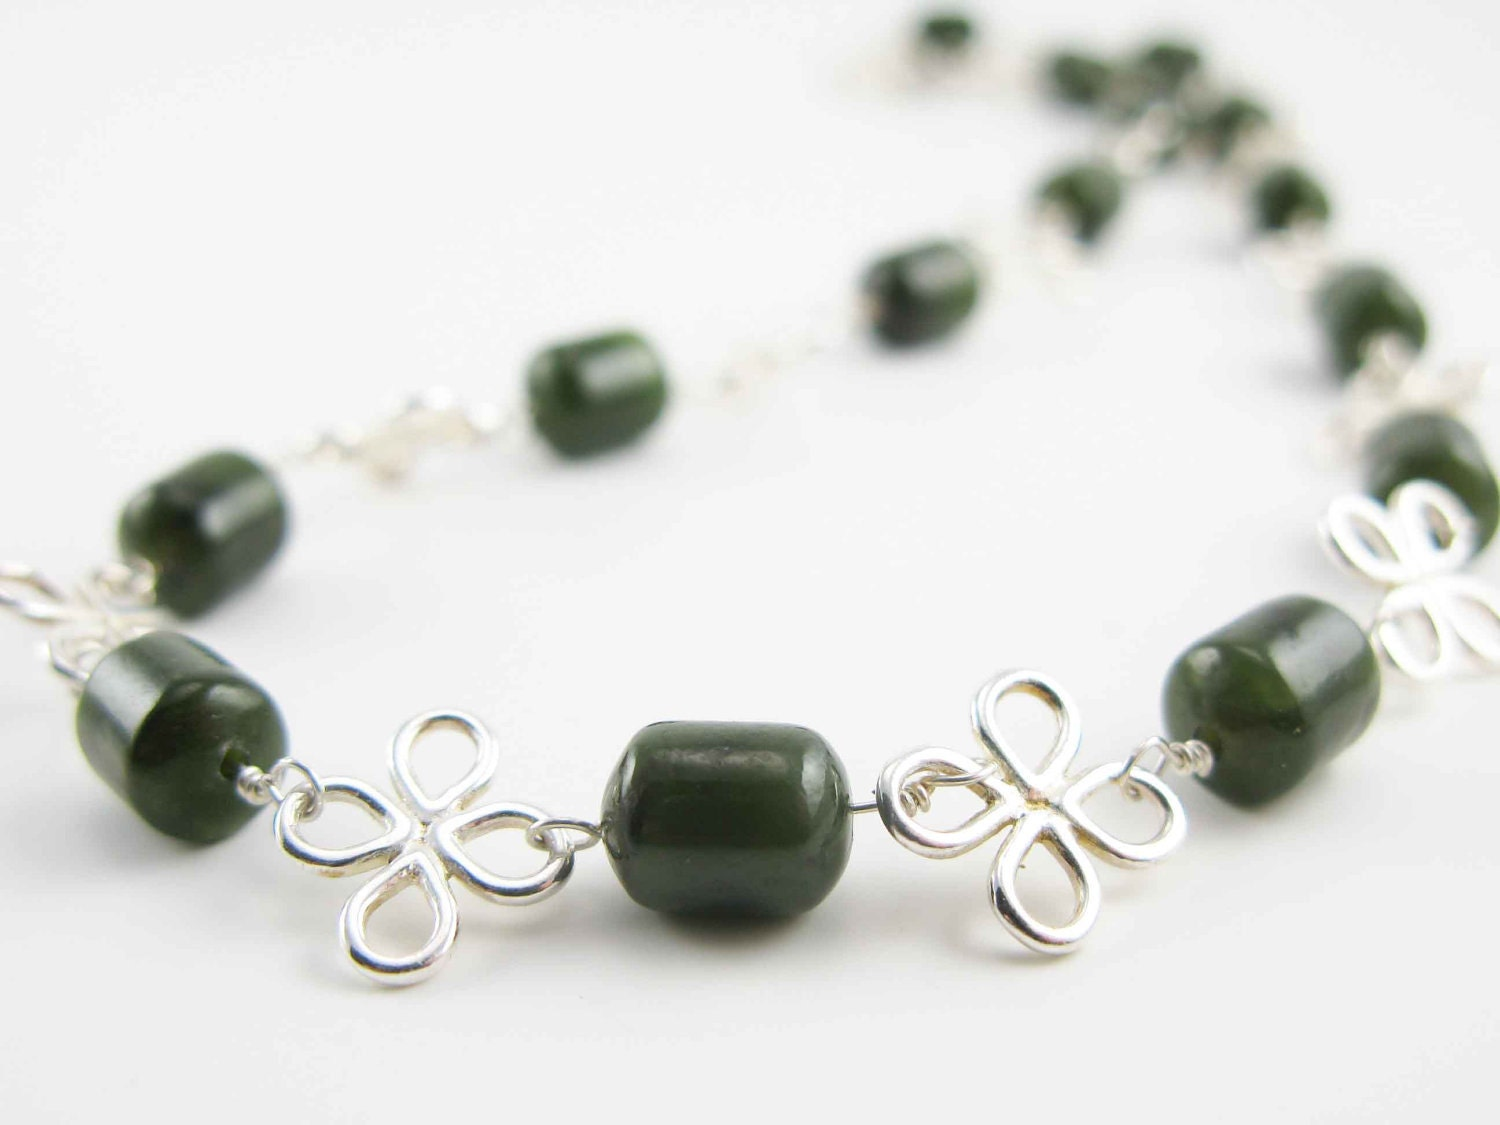 On Vacation NONA: Reproduction Roman Necklace - sterling silver flowers and Nephrite Jade - assembled by hand - mejjewelry